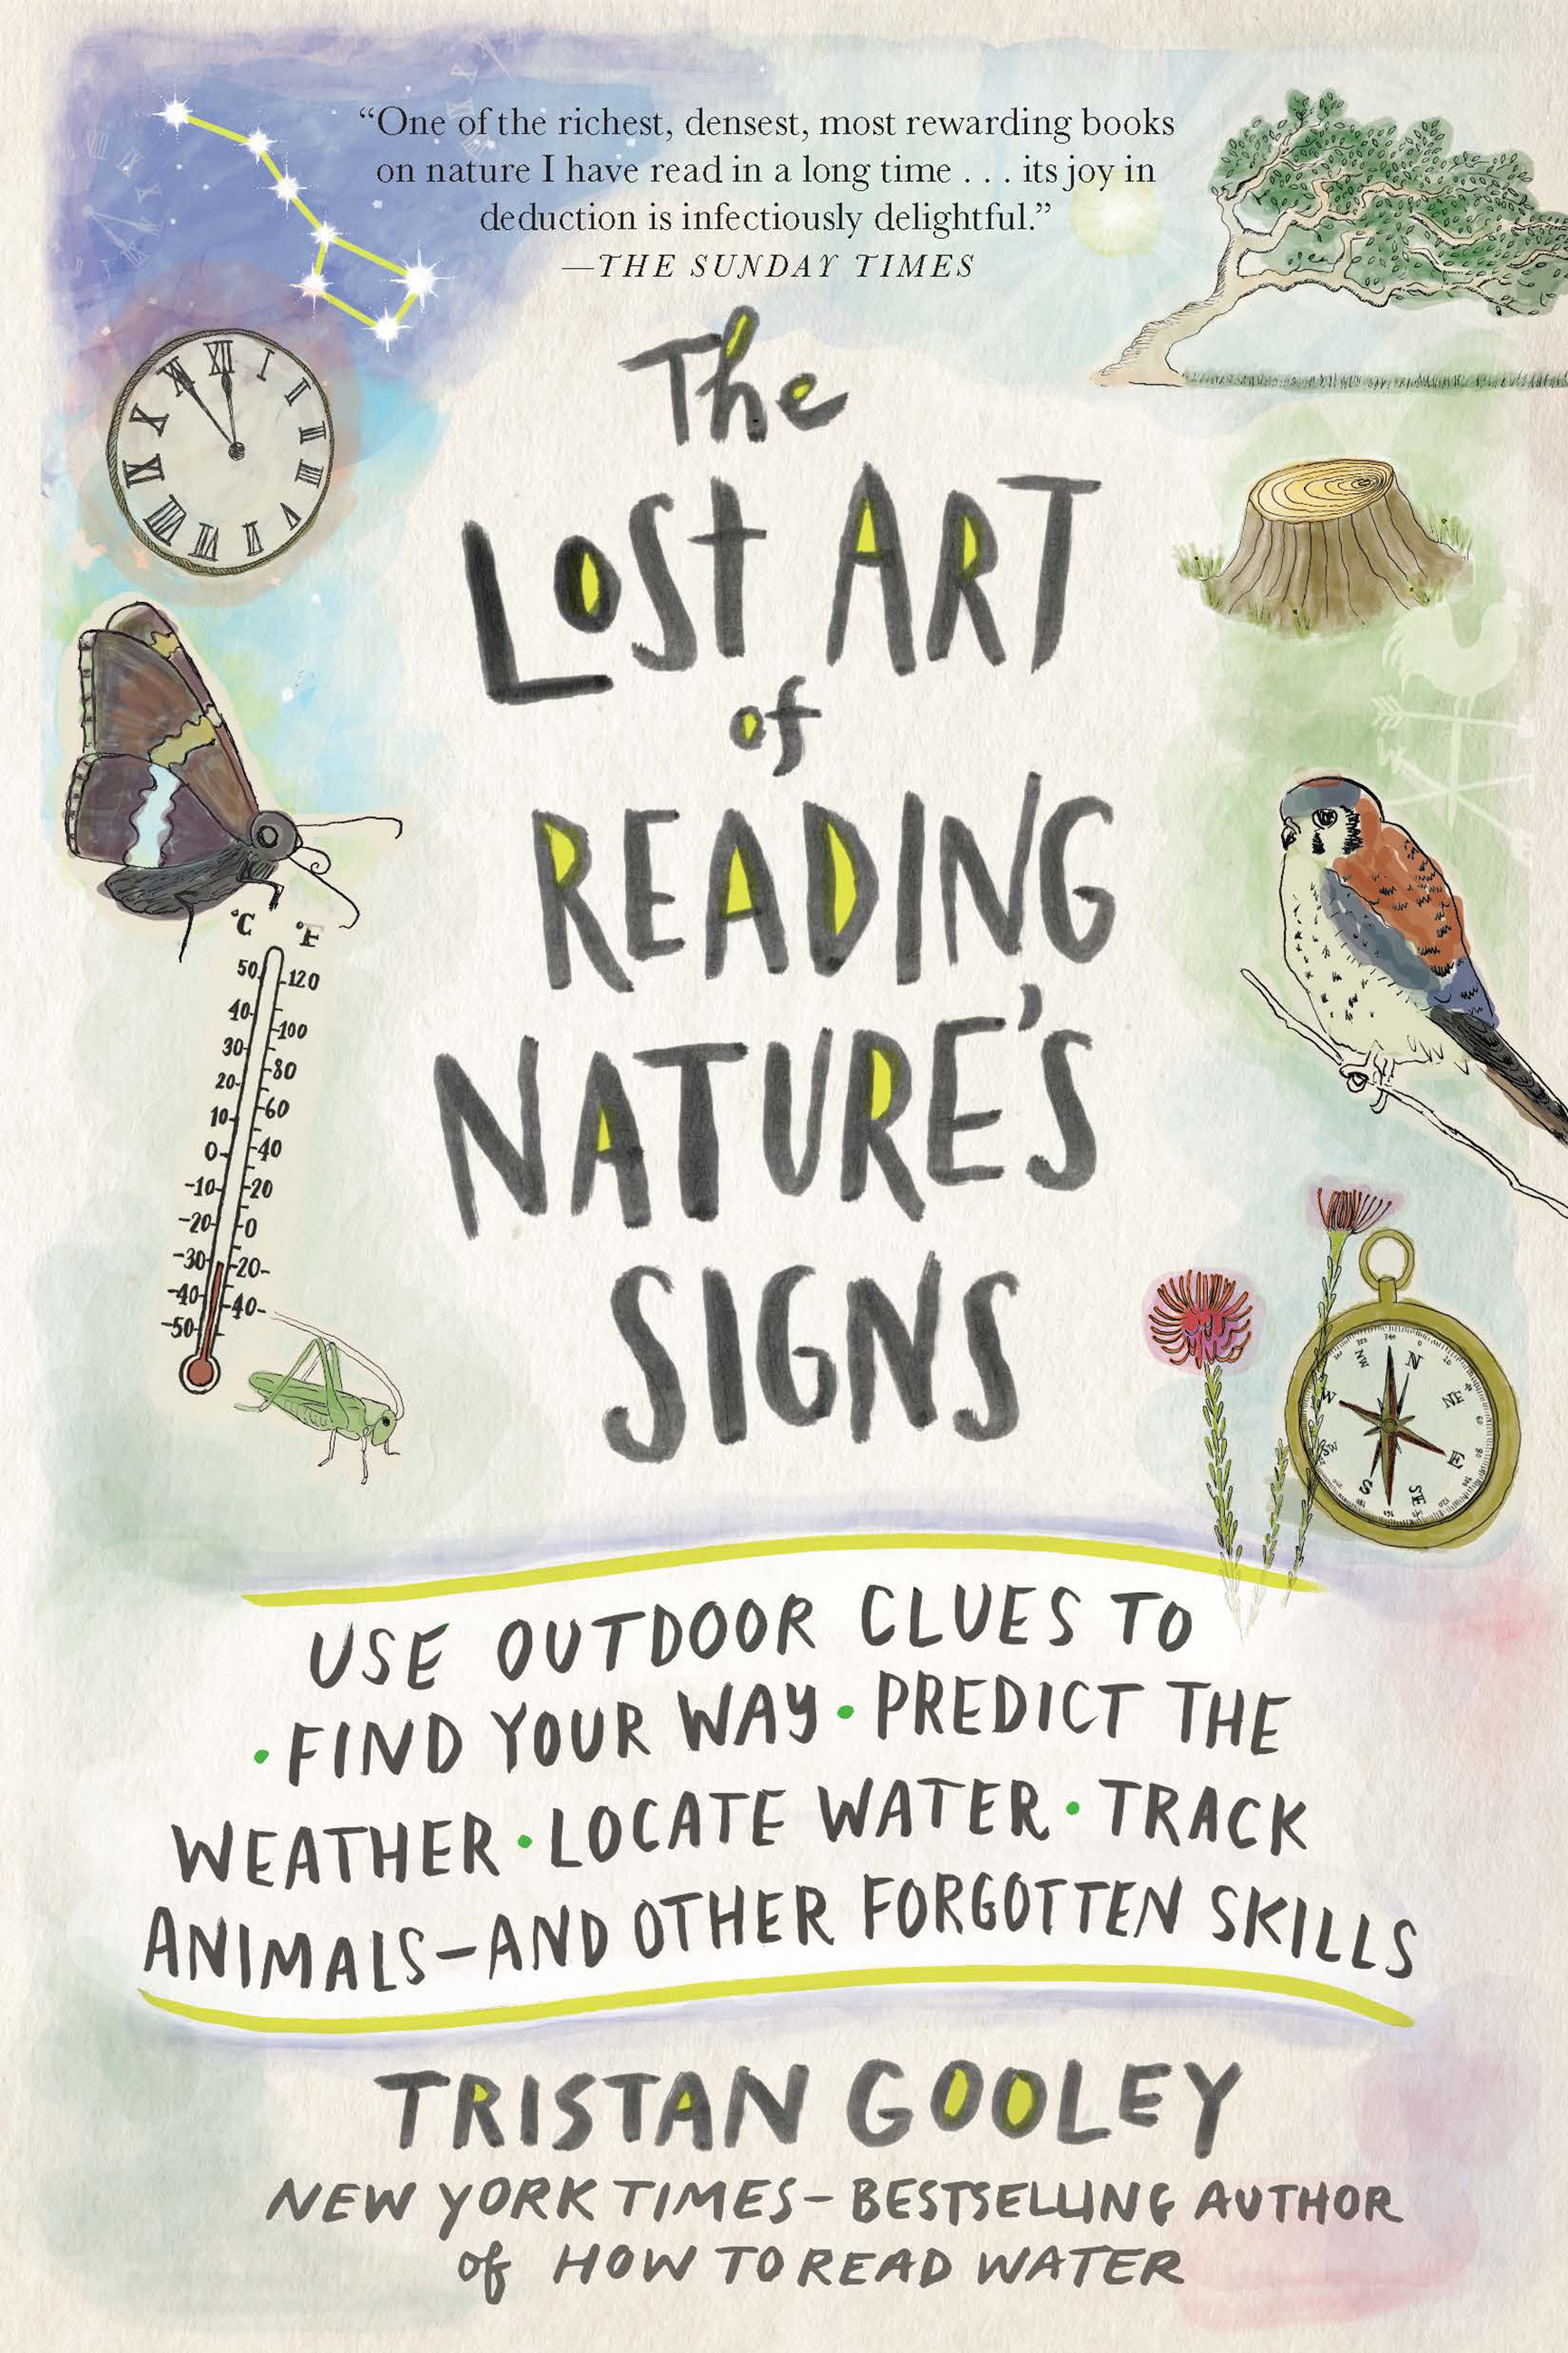 The Lost Art of Reading Nature's Signs Use Outdoor Clues to Find Your Way, Predict the Weather, Locate Water, Track Animals—and Other Forgotten Skills